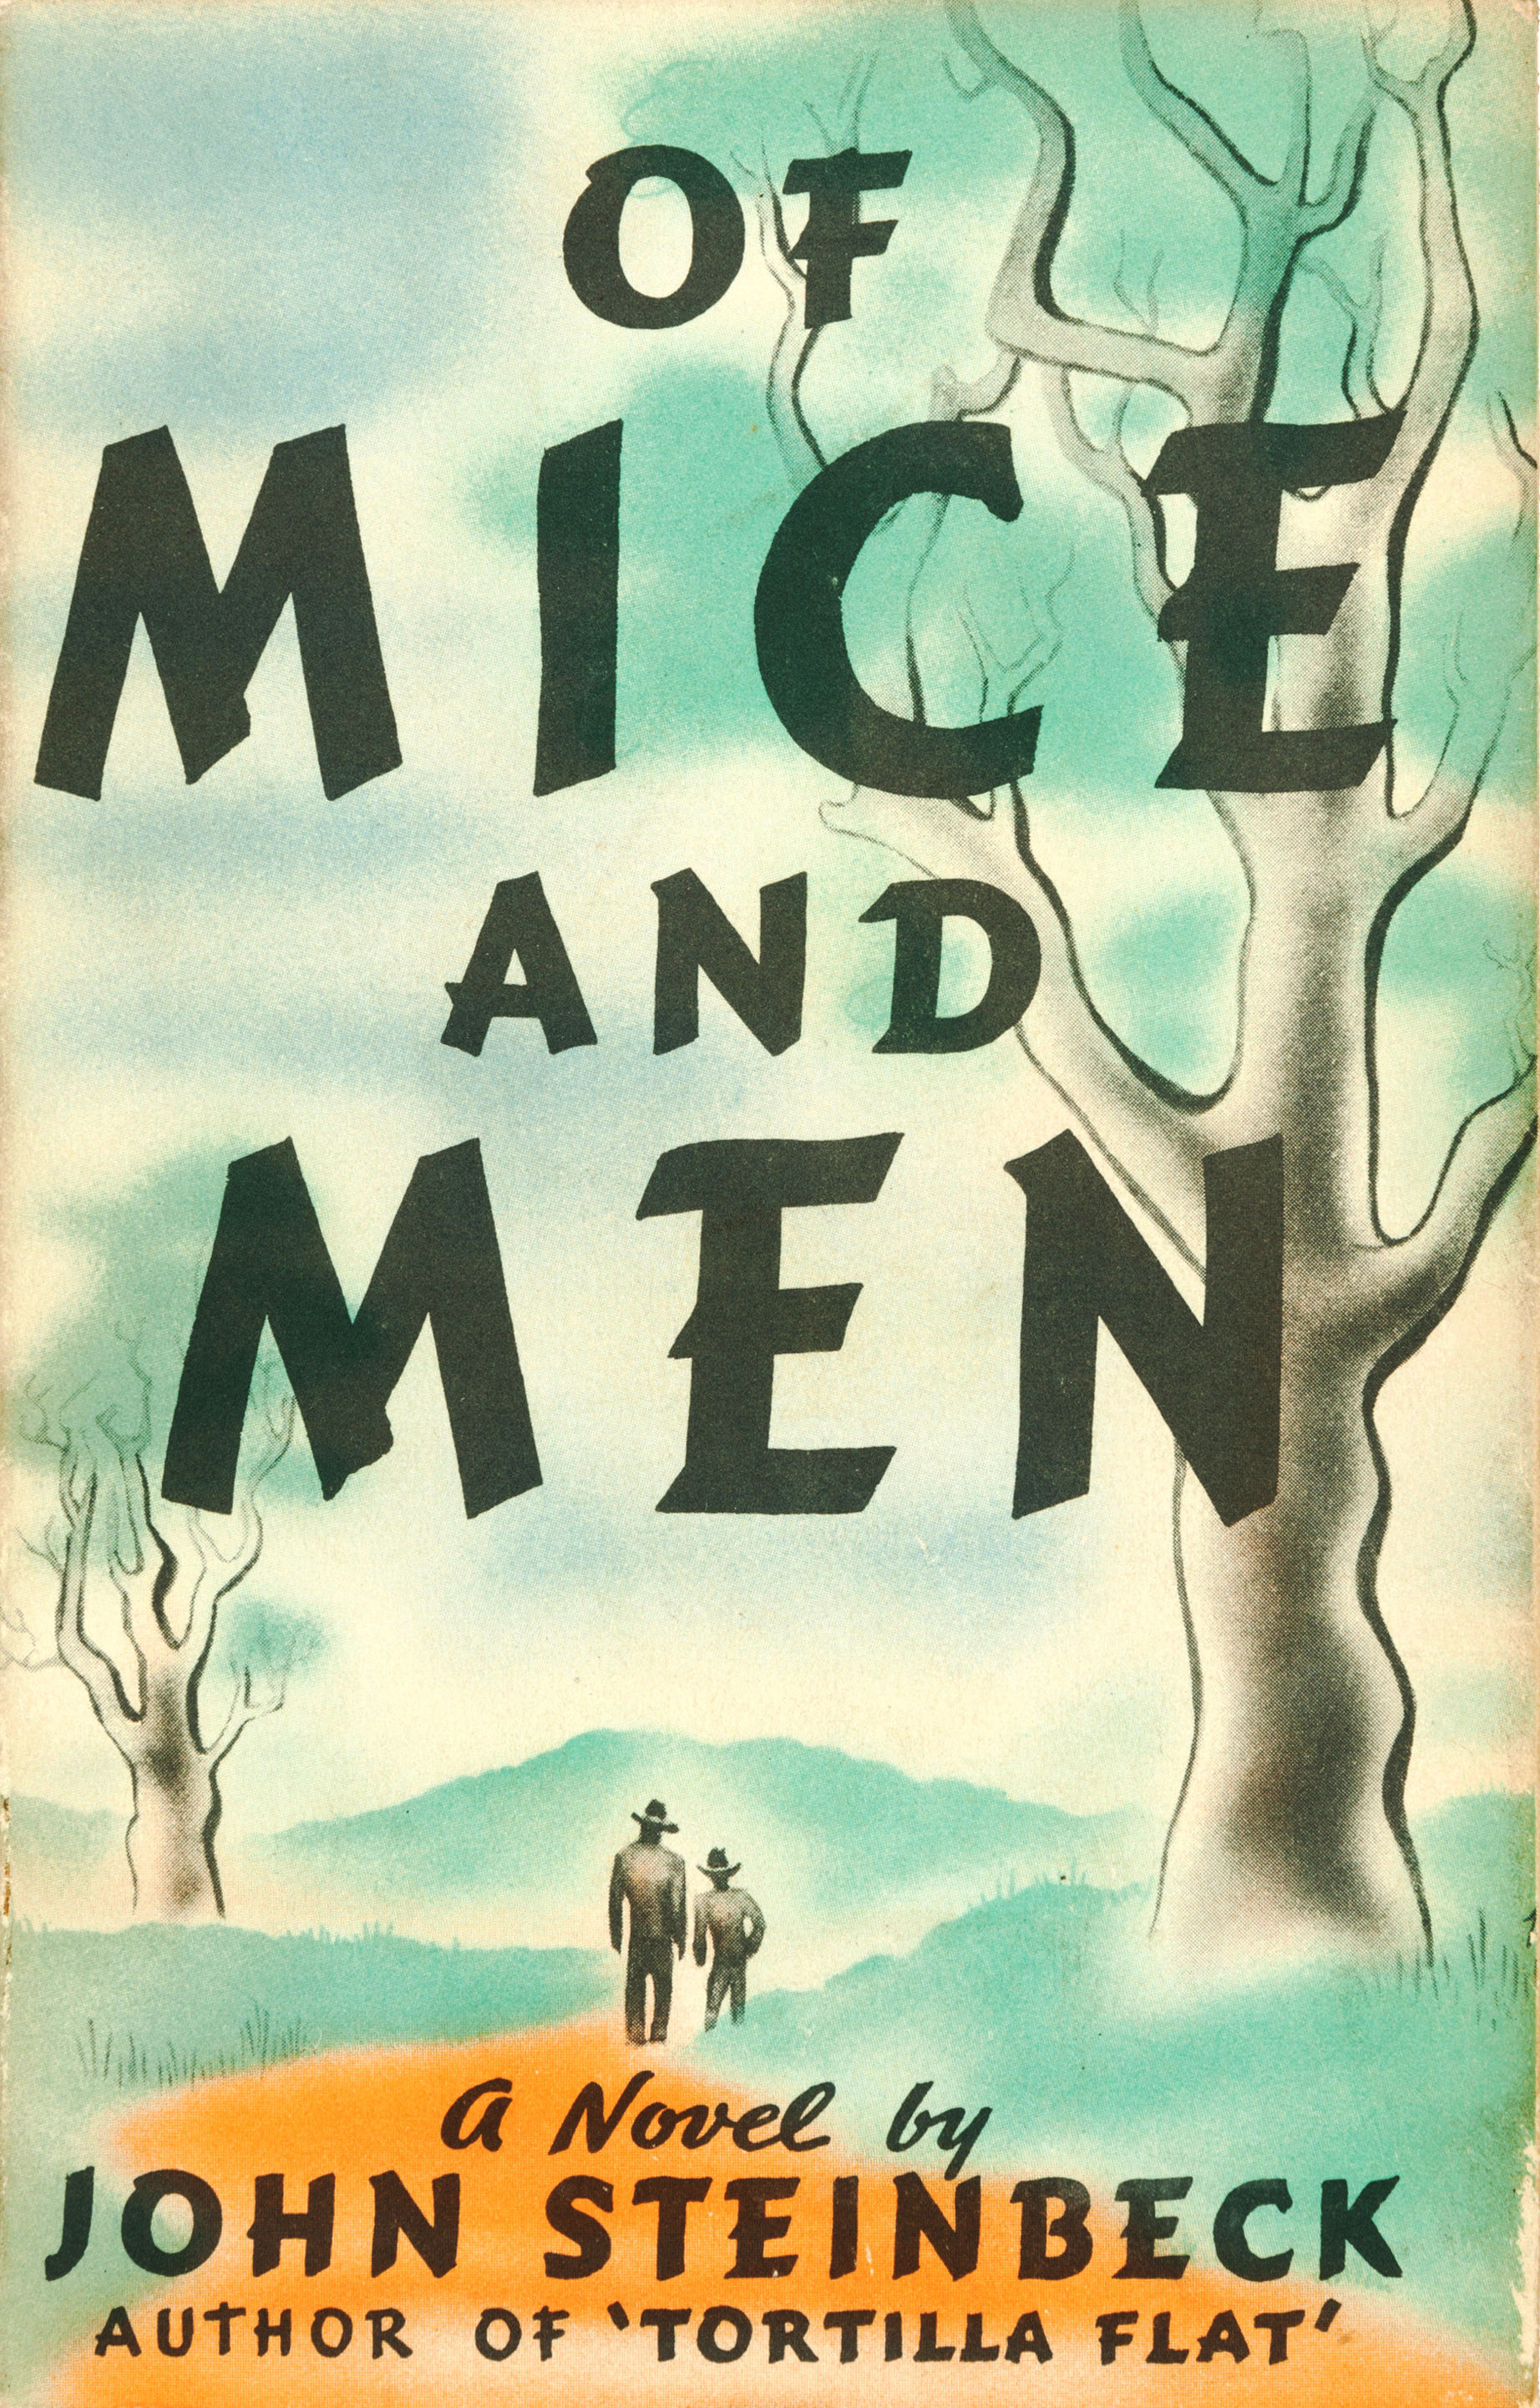 Two men walking down a path on the cover of Of Mice and Men